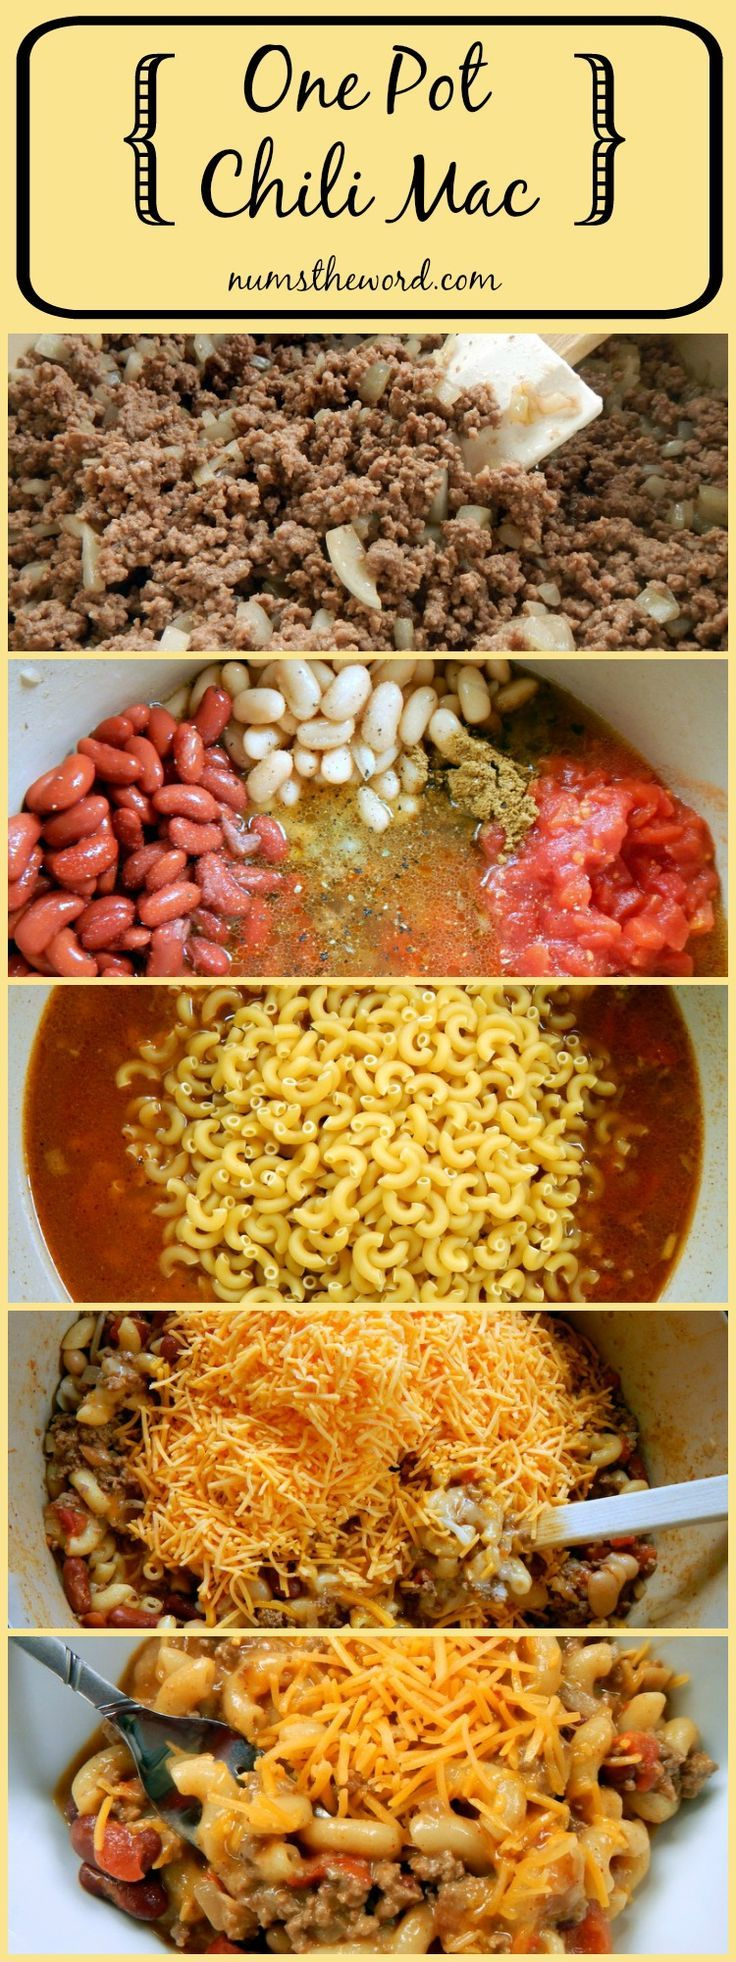 One Pot Chili Mac - If you love 30 minute meals that require ONE POT for clean up, then you MUST try this easy and hearty One Pot Chili Mac. A good home cooked weeknight meal!